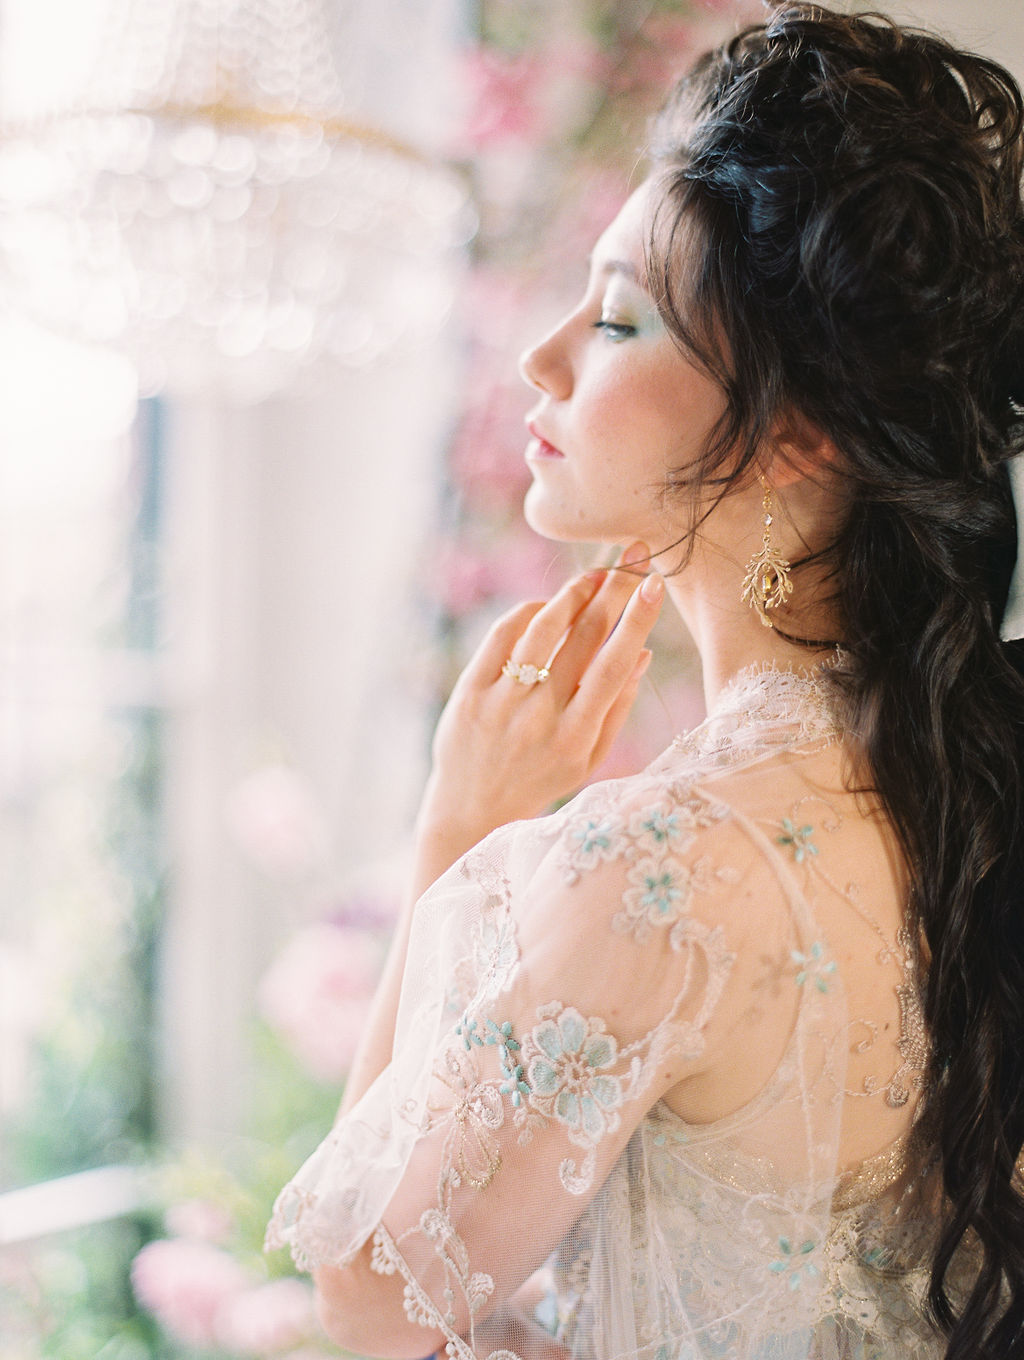 Claire Pettibone Timeless Wedding Dresses New York Bridal Fashion Week with East Made Co and Sophie Kaye Photography Spring 2019(160of353).jpg